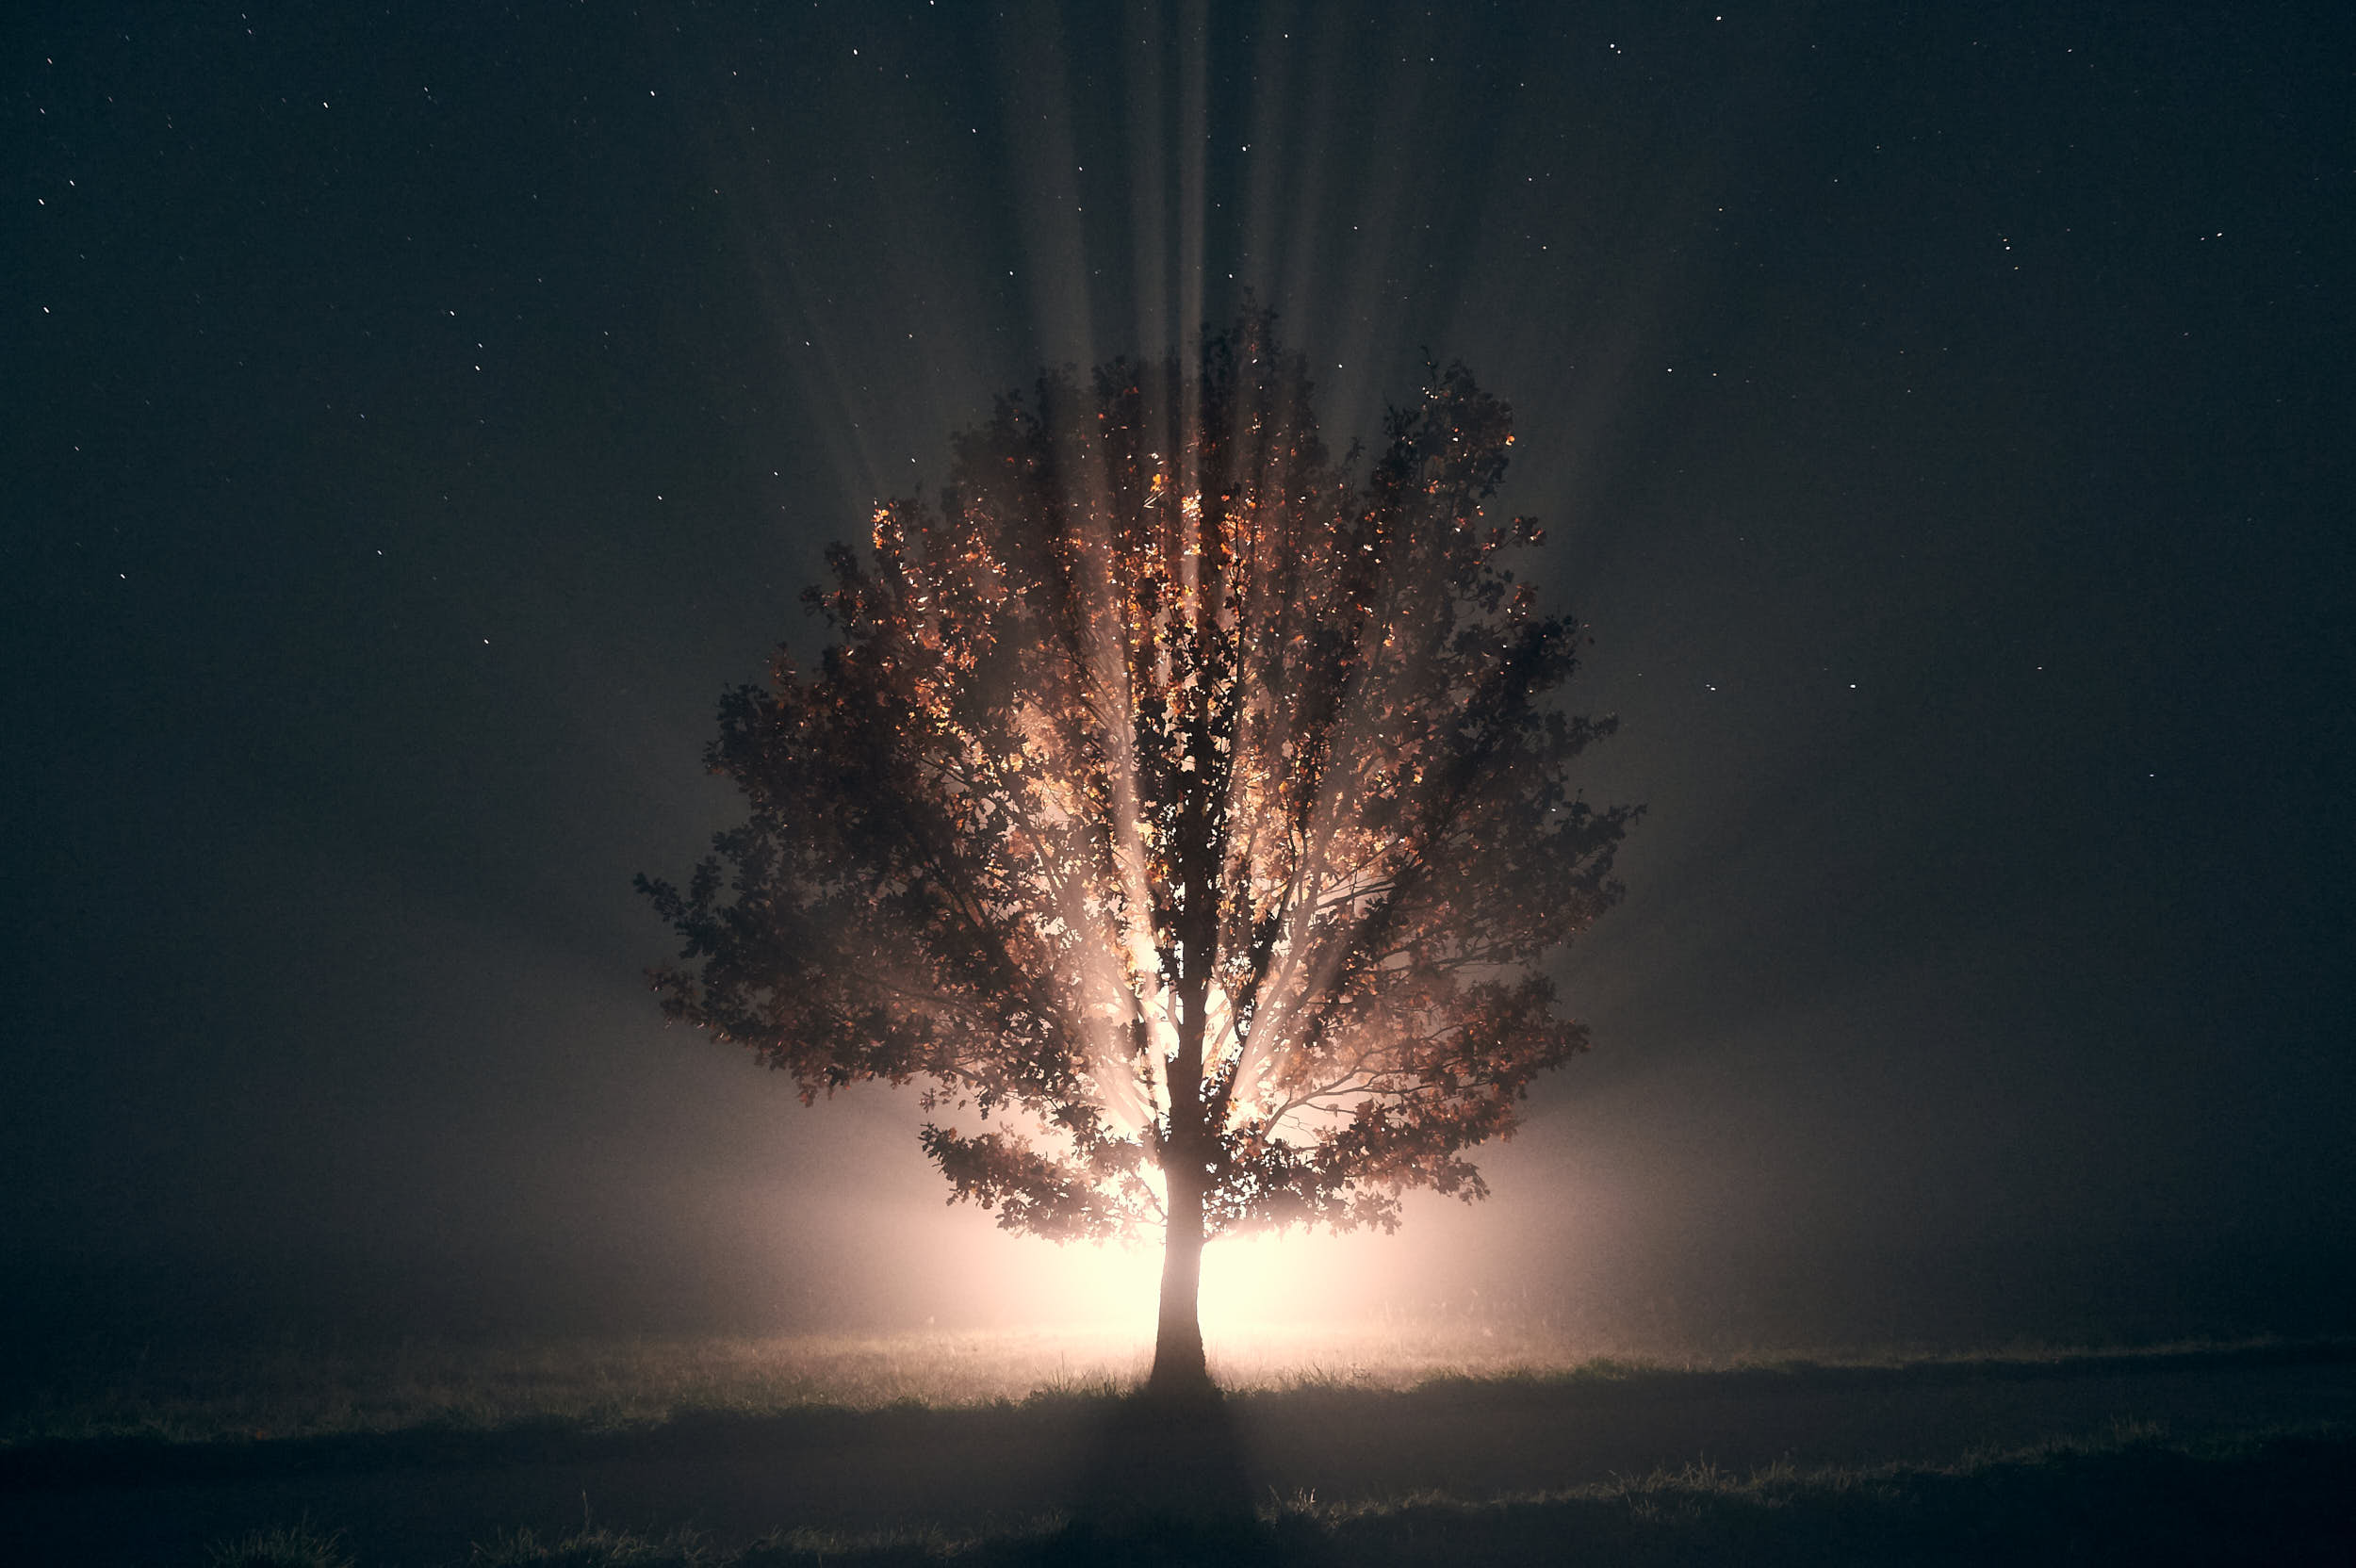 Night landscape photography: solitary tree on a meadow with magical light coming from behind.